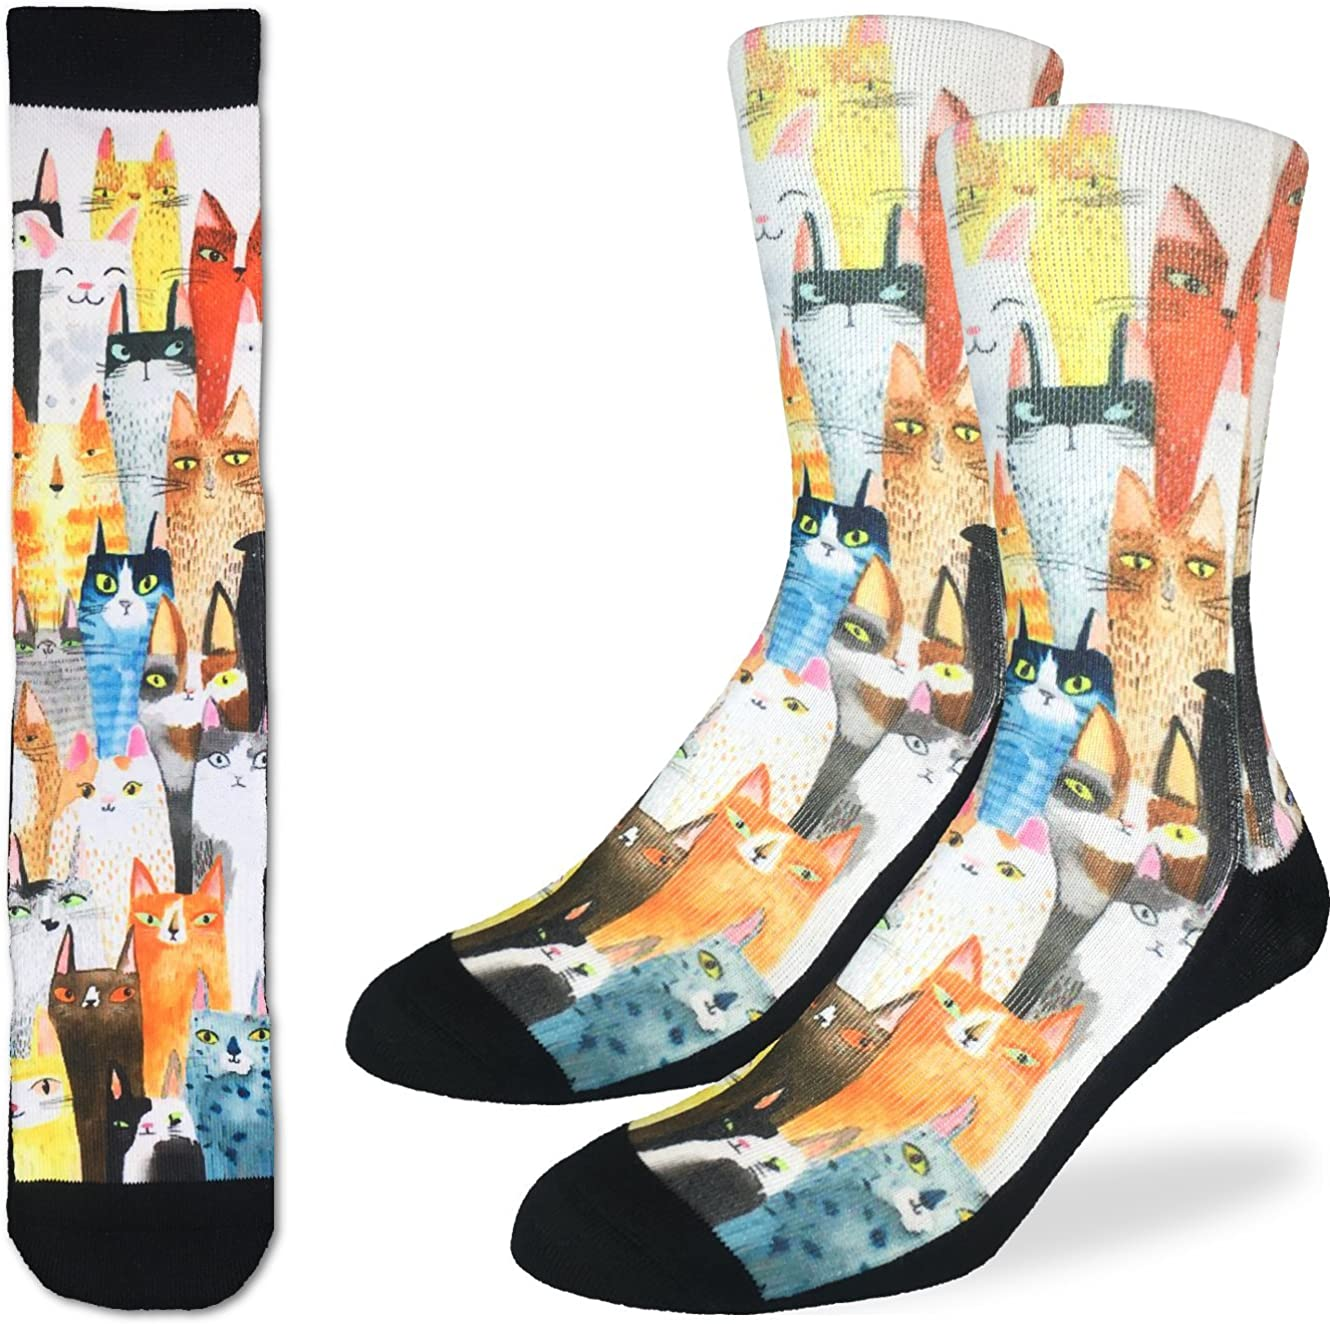 Cat Party Adult Novelty Socks Good Luck Sock Cats Crew Casual Black Footwear